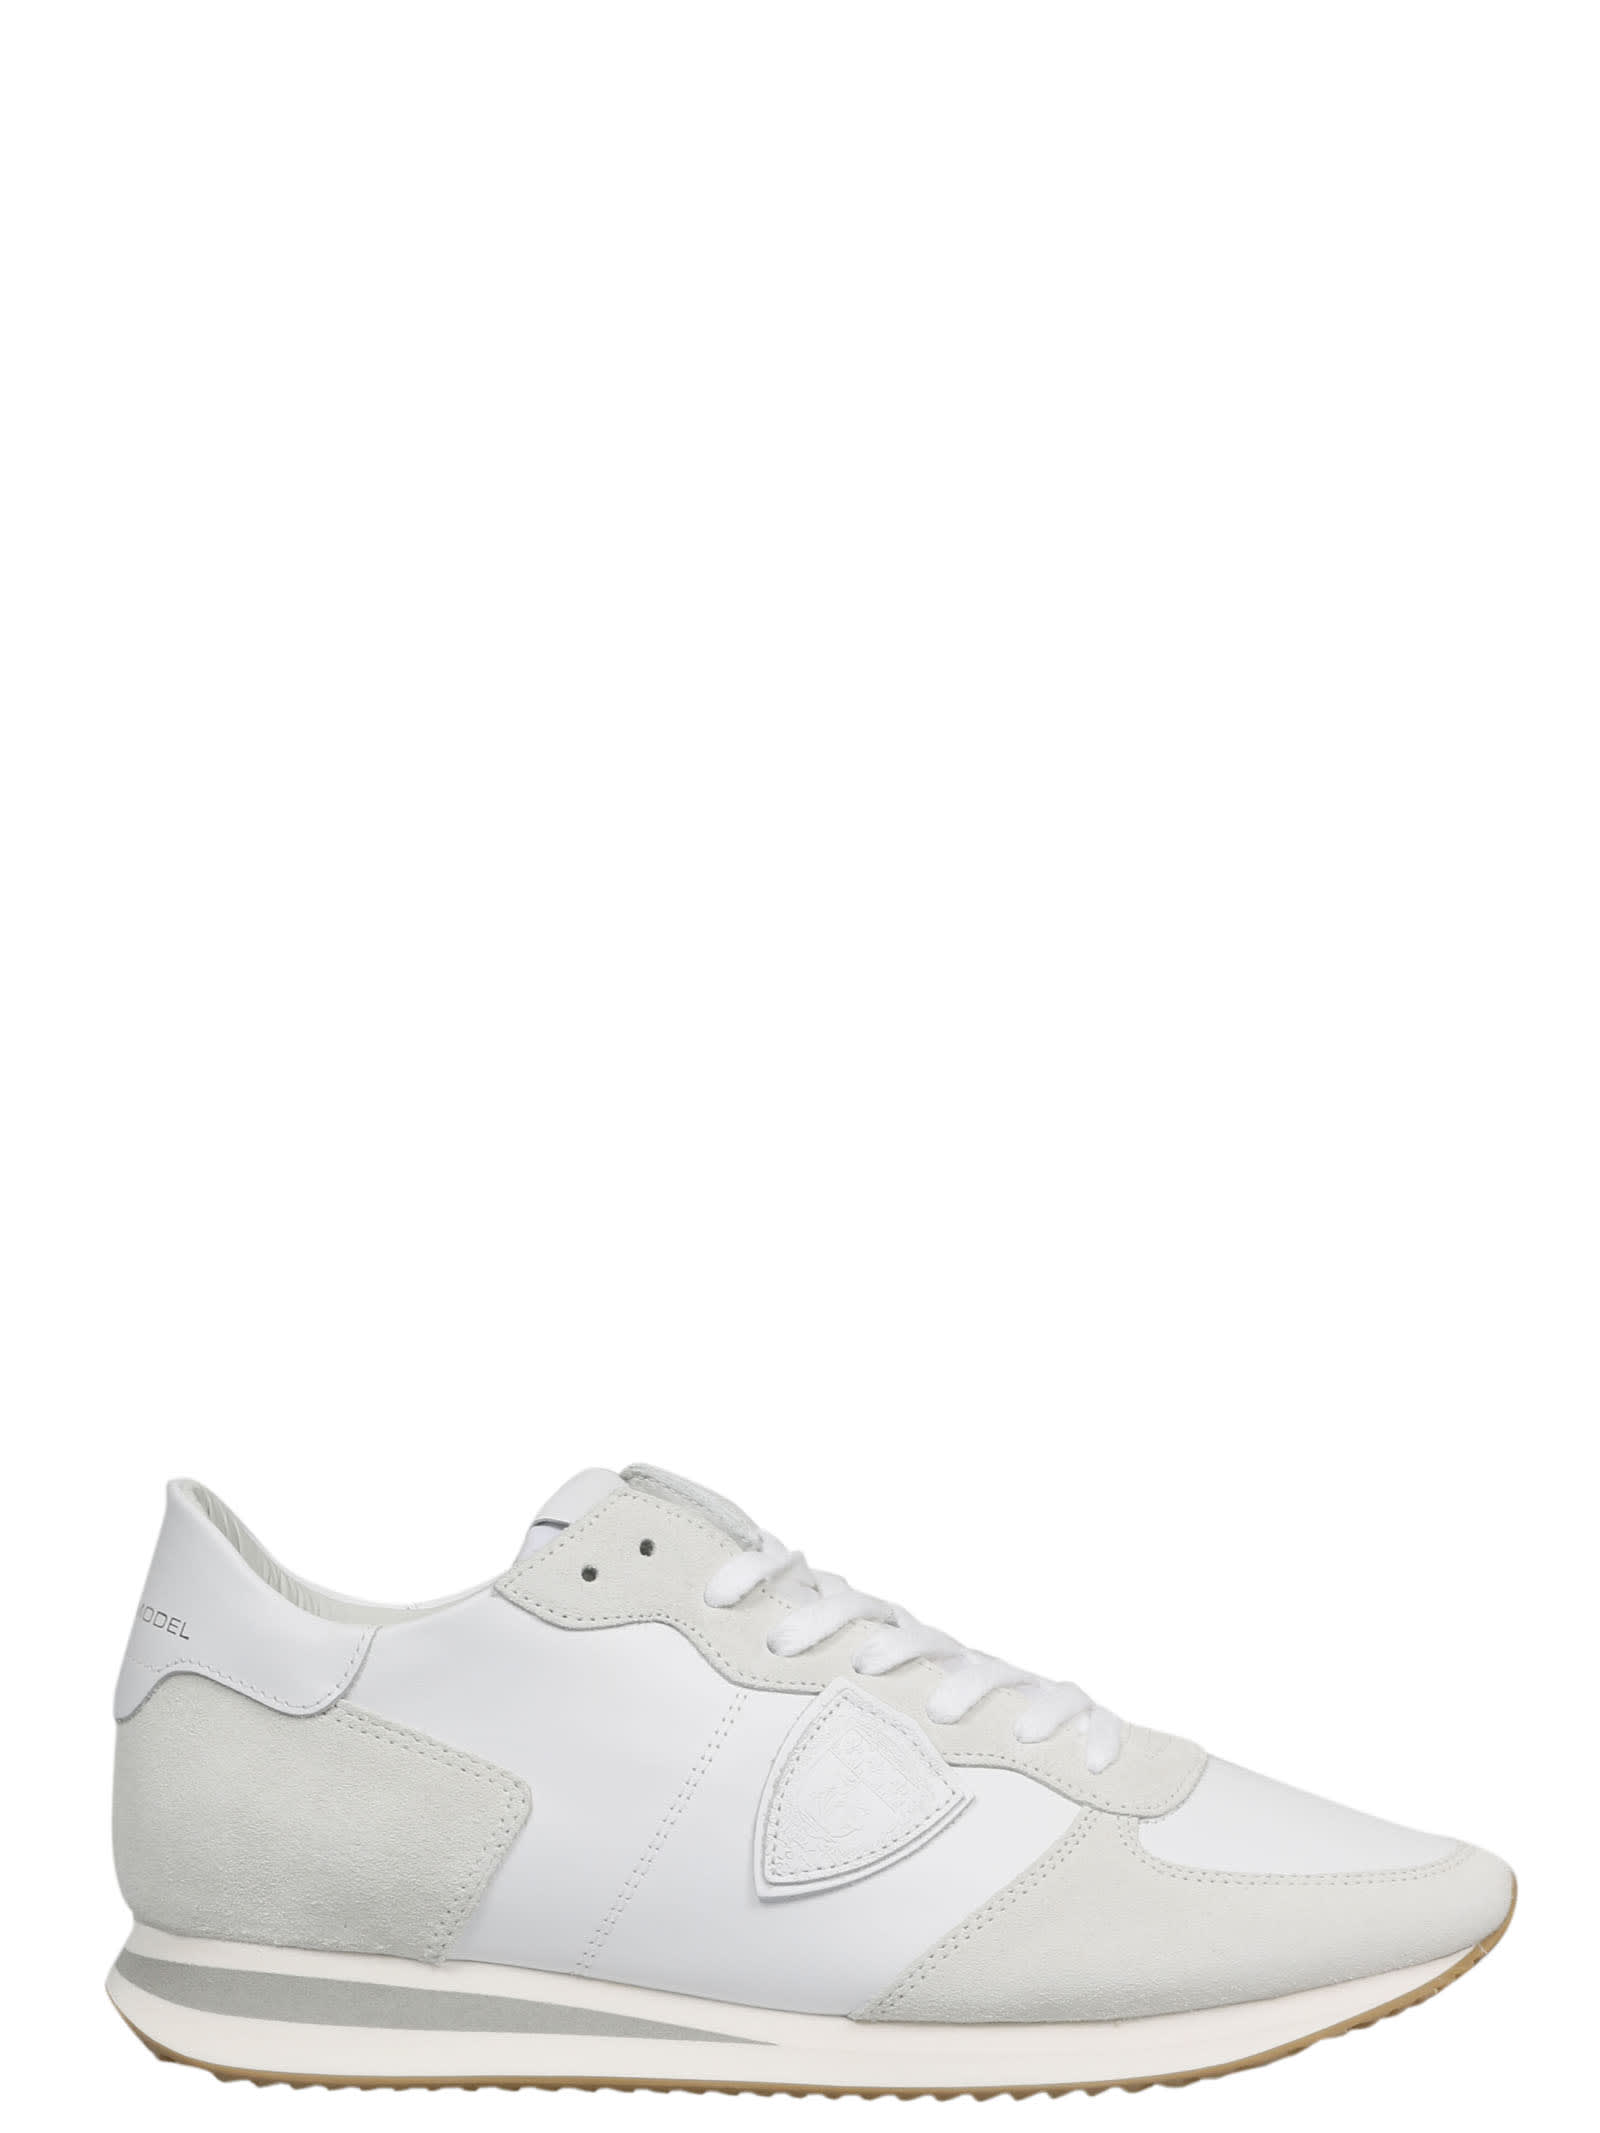 Philippe Model Leathers TZLU LEATHER SNEAKERS